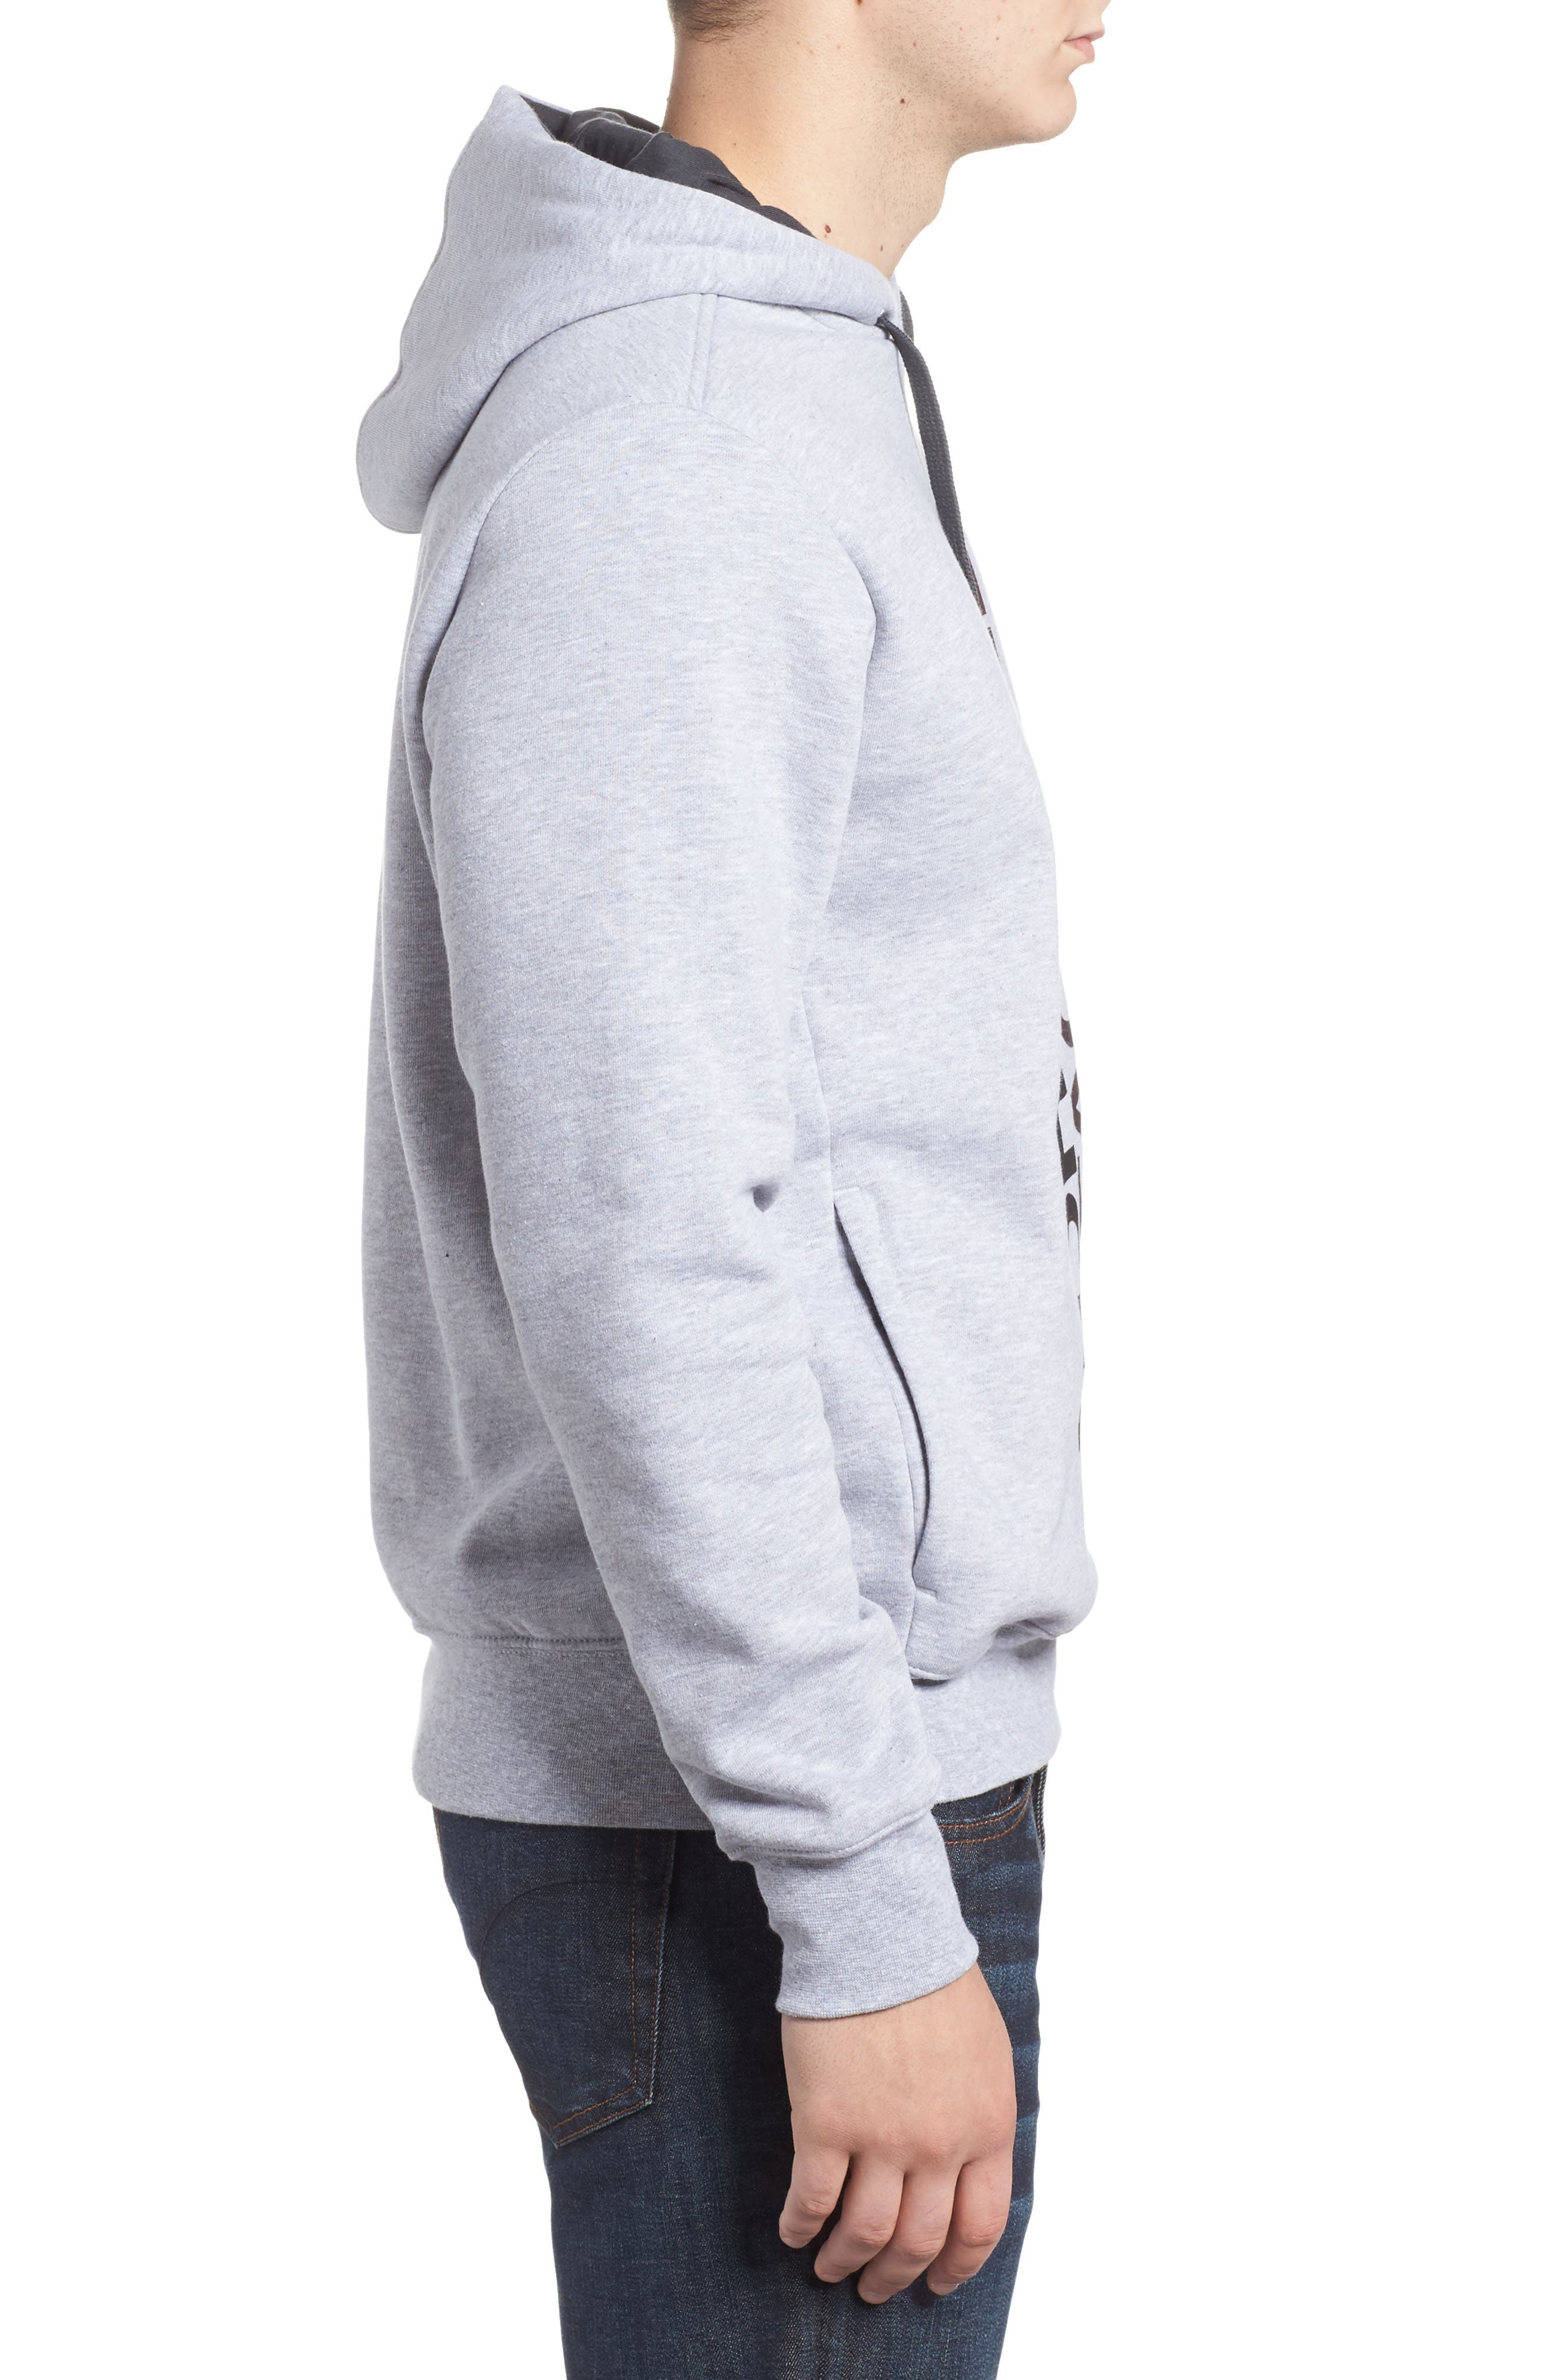 Trivert Cotton Blend Hoodie,                             Alternate thumbnail 3, color,                             Light Grey/ Asphalt Grey Multi